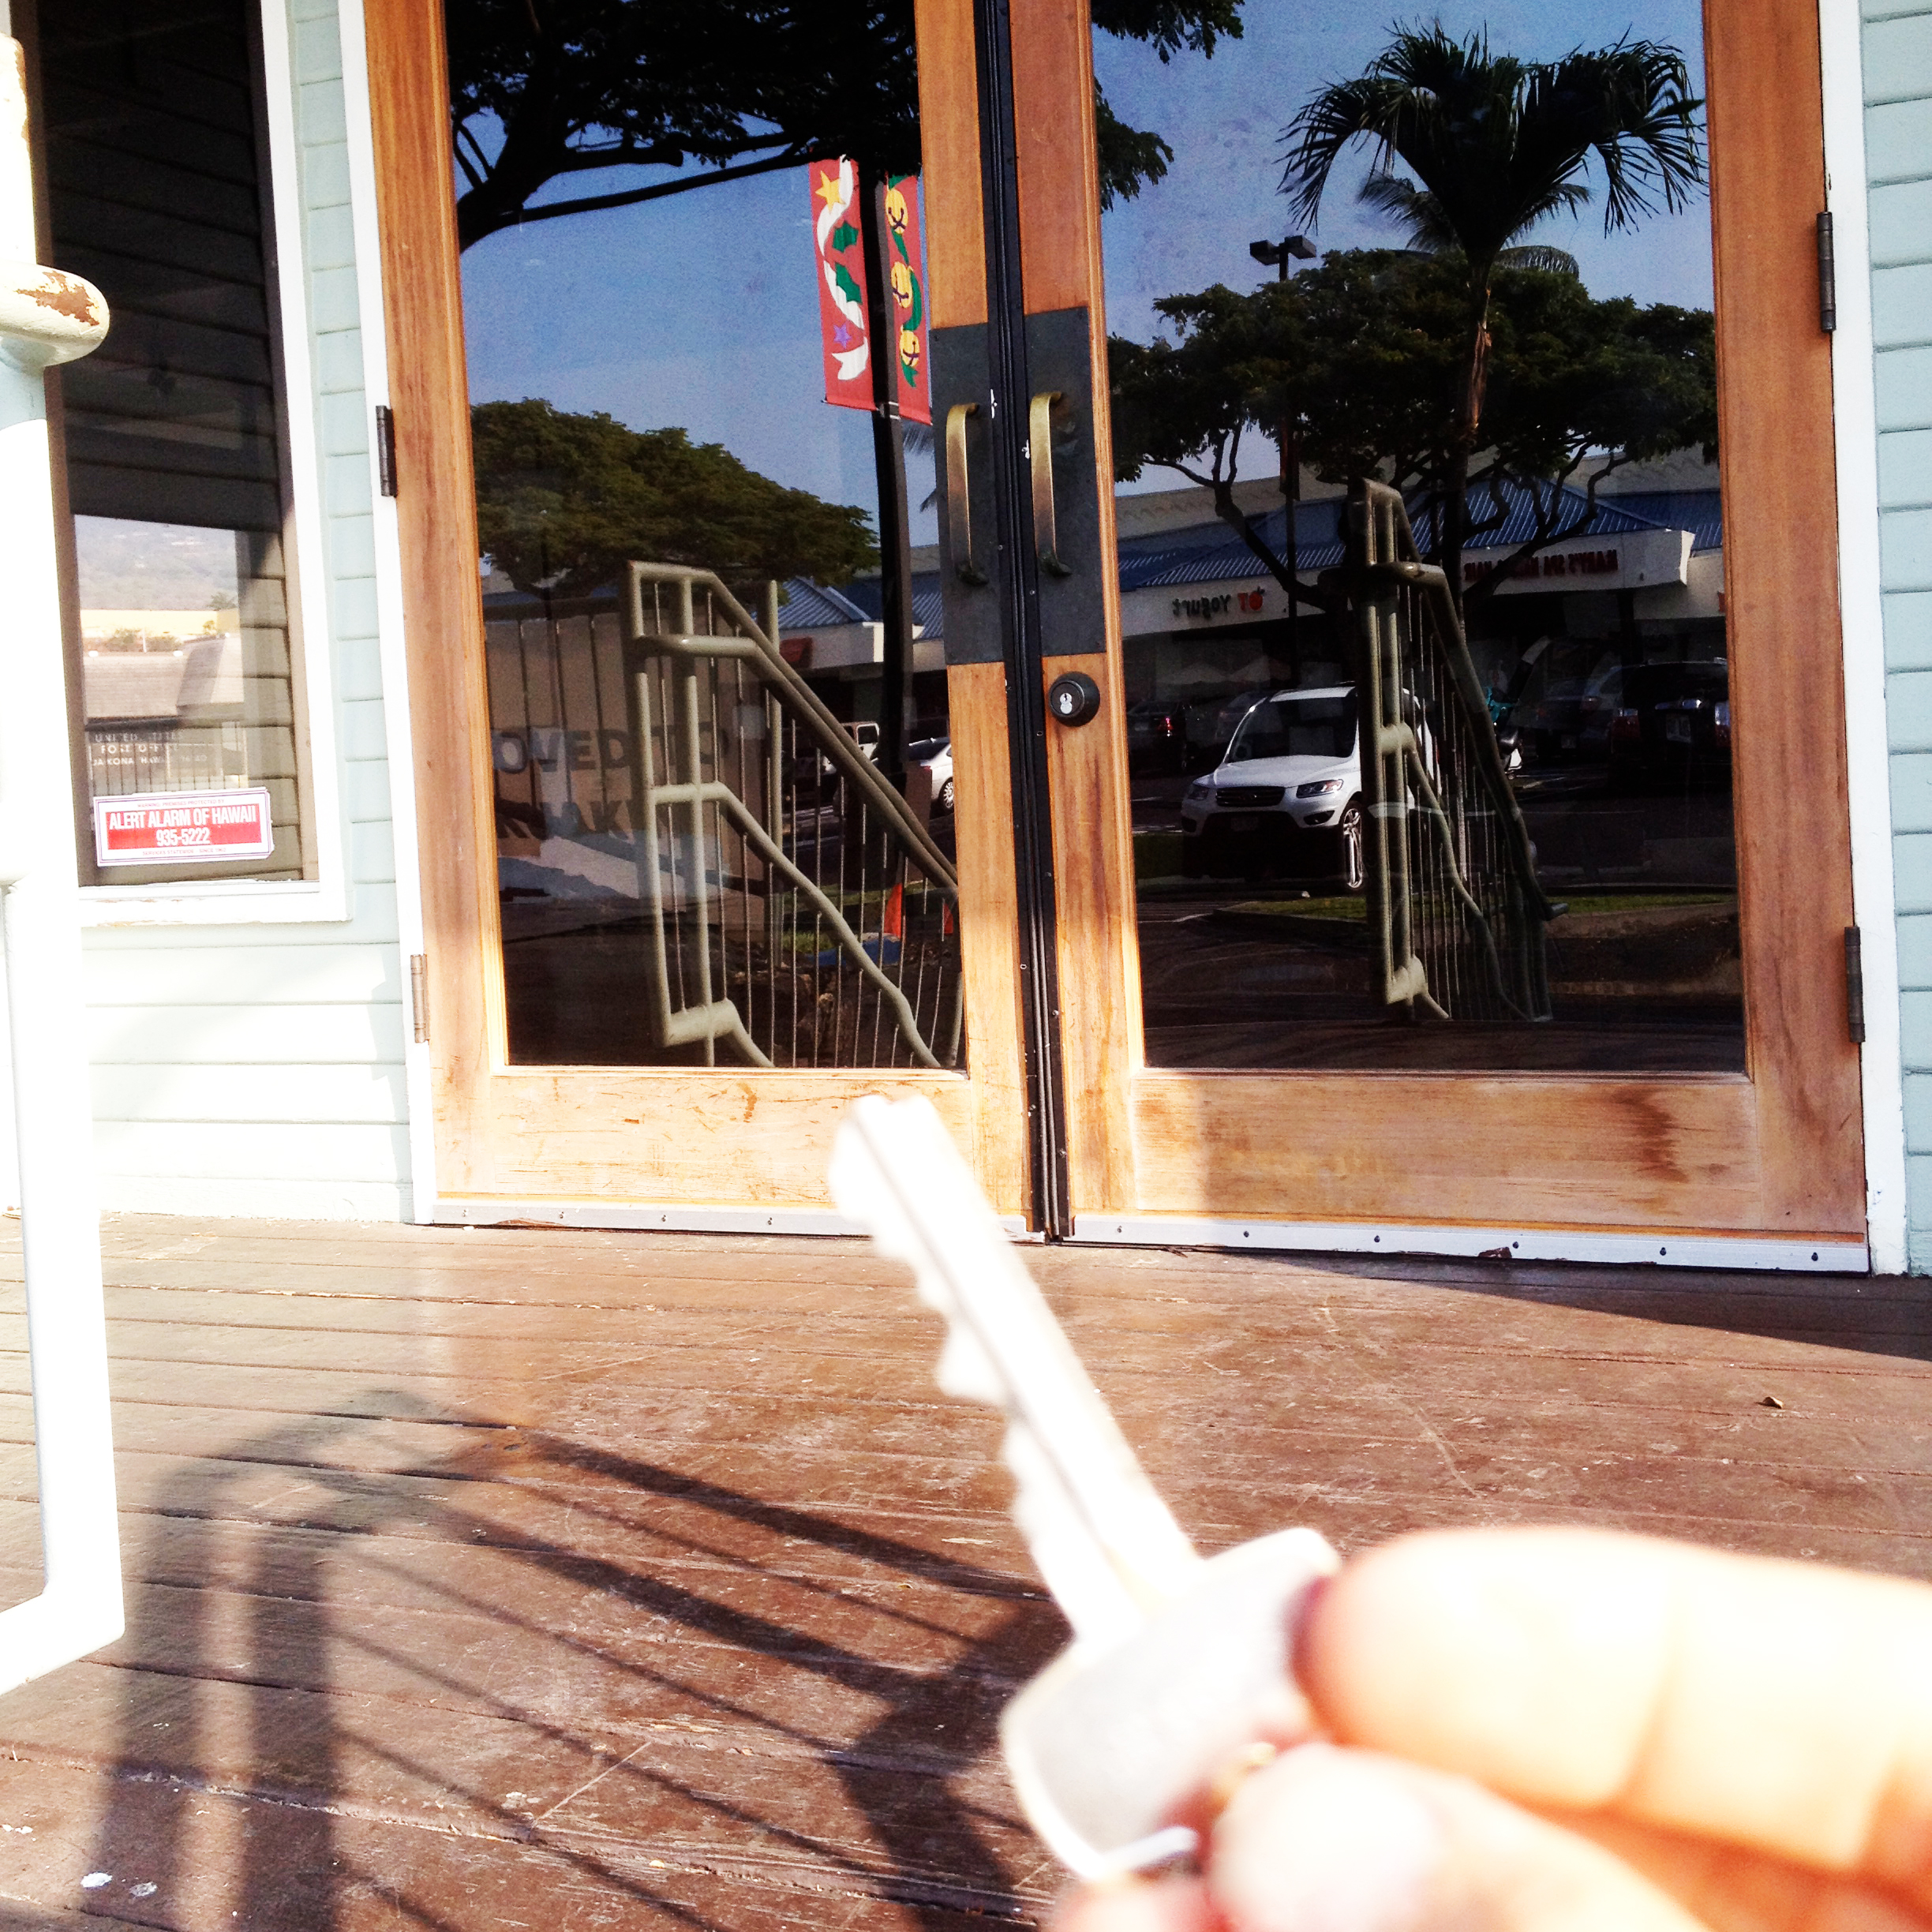 2013 - We got the keys to a location previously held by Starbucks in the Kona Coast Shopping Center on Palani Road.